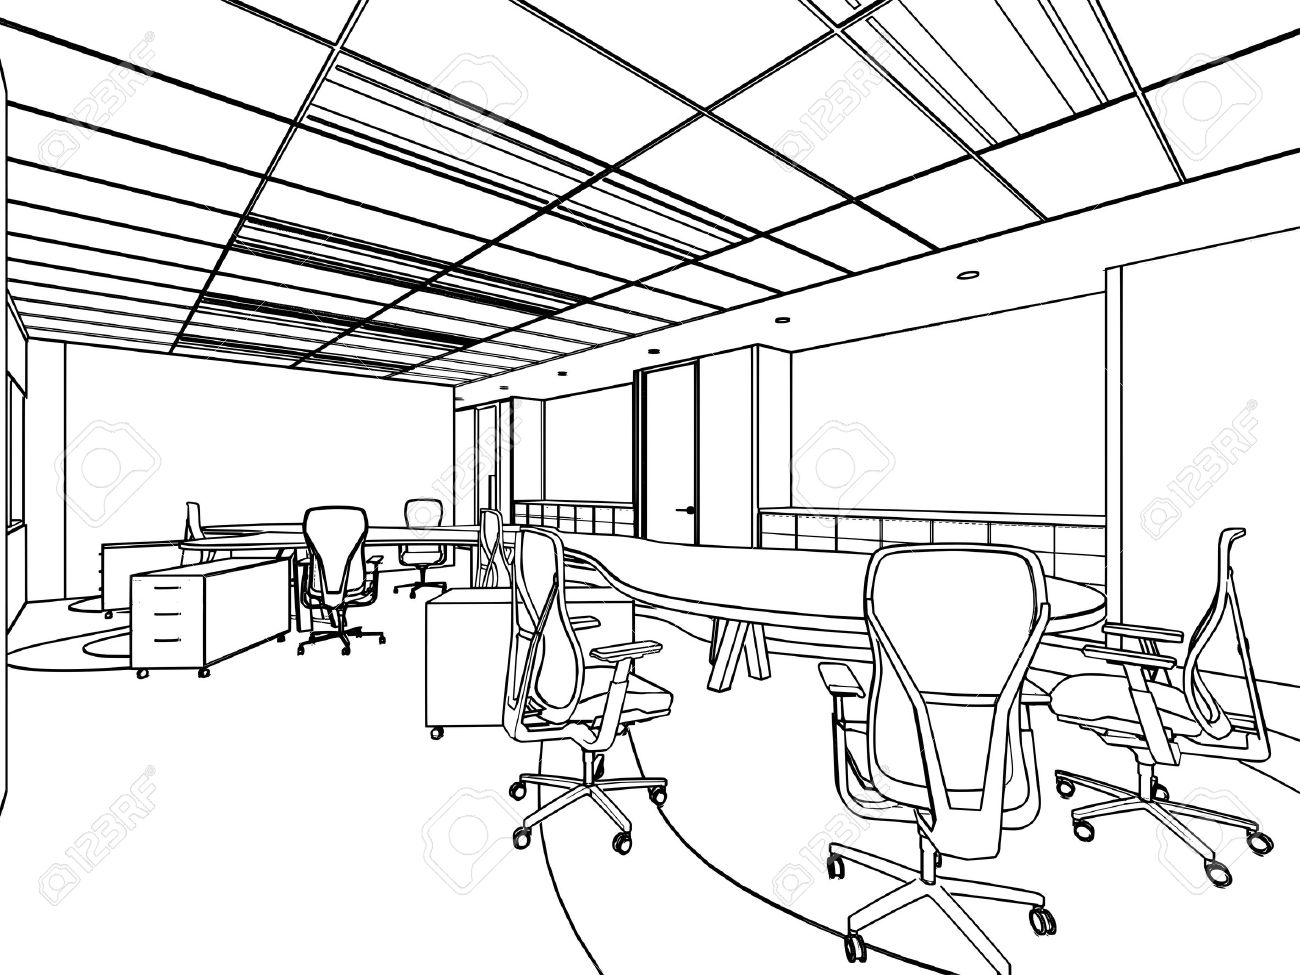 1300x975 Outline Sketch Drawing Of A Interior Space Office Stock Photo